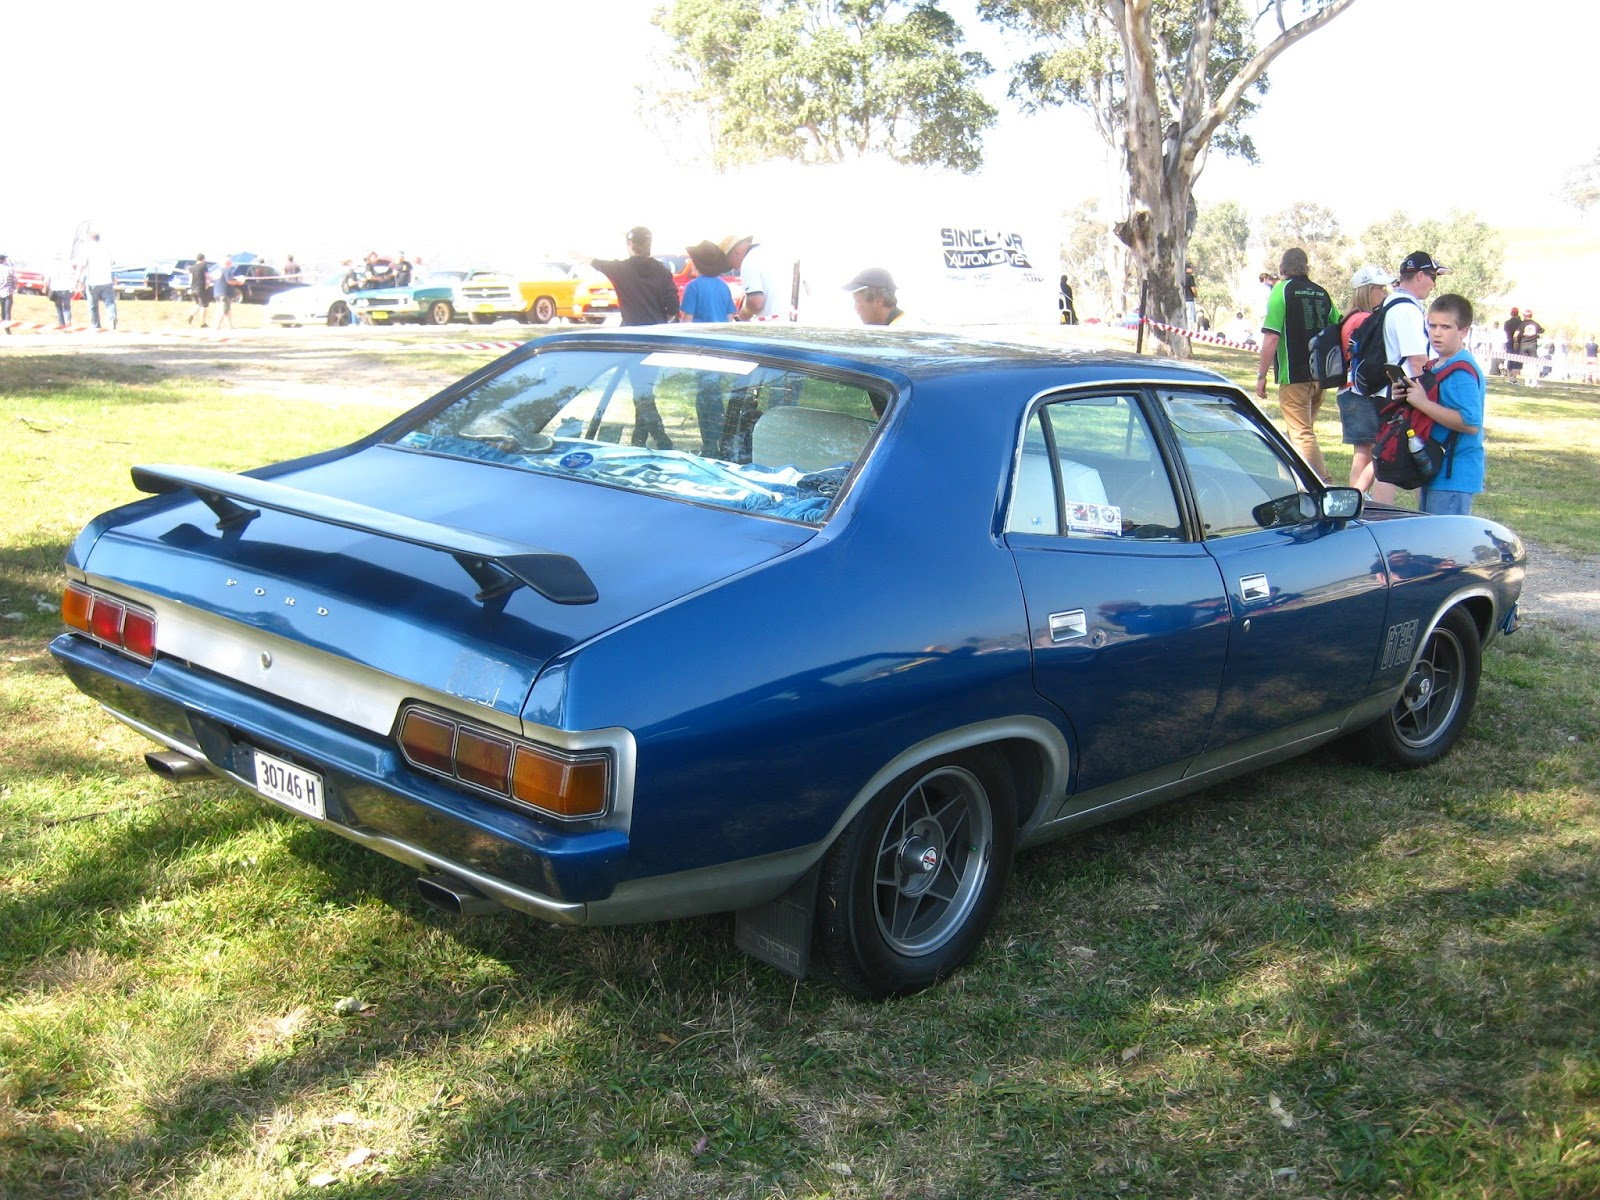 aussie old parked cars 1973 ford xb falcon gt 351 sedan. Black Bedroom Furniture Sets. Home Design Ideas